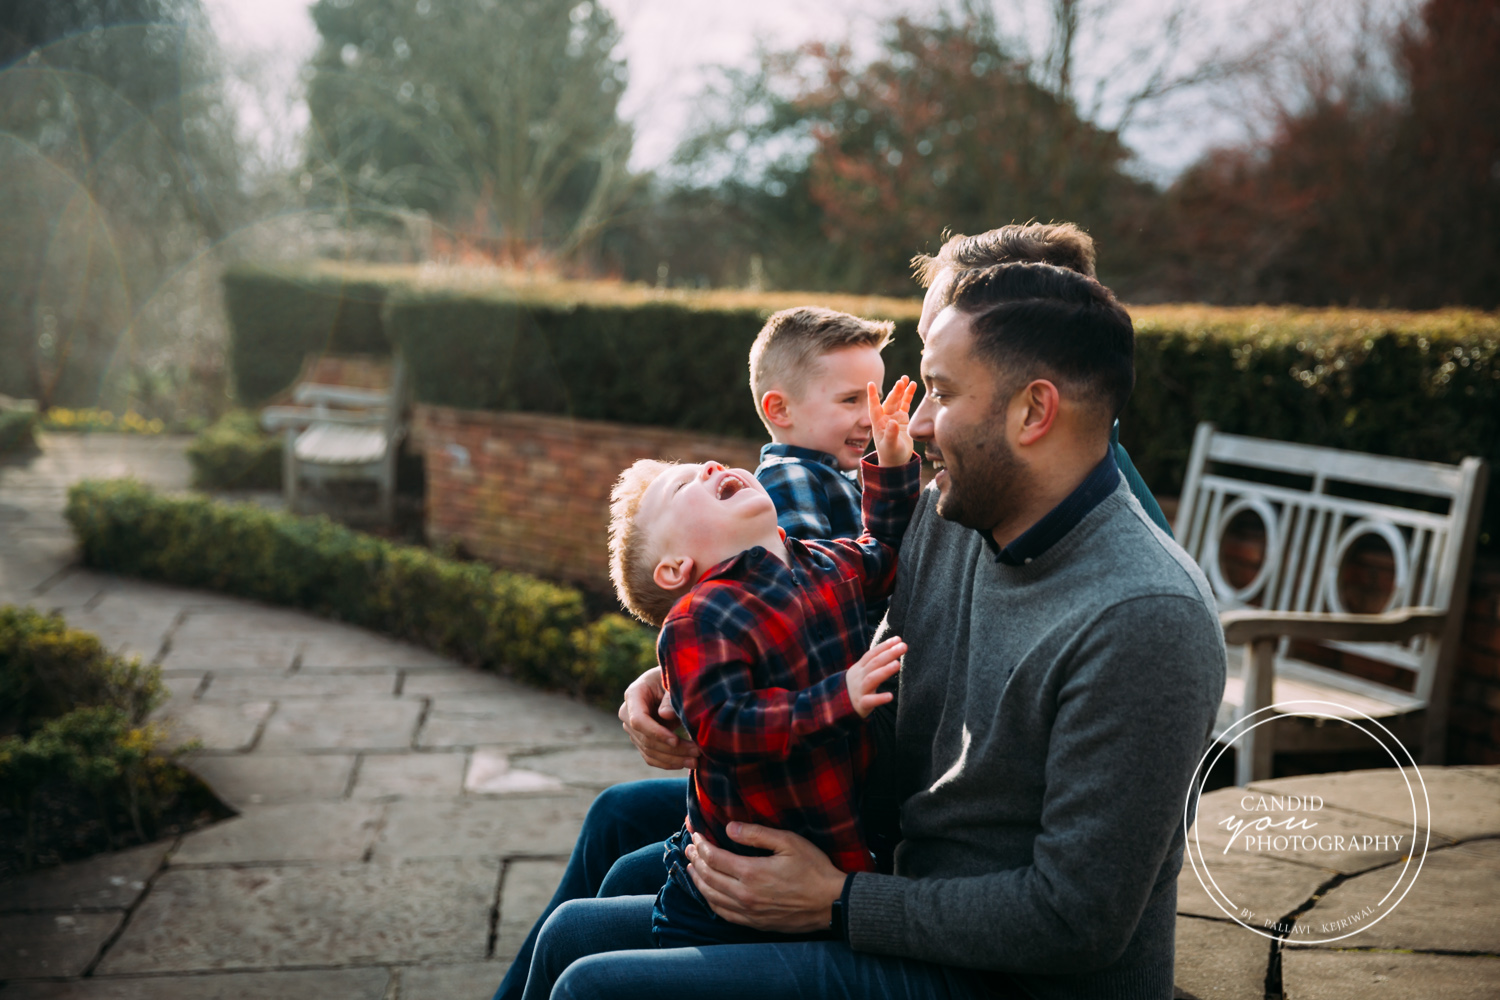 boys giggle uncontrollably while sitting on dad's laps and against setting sun